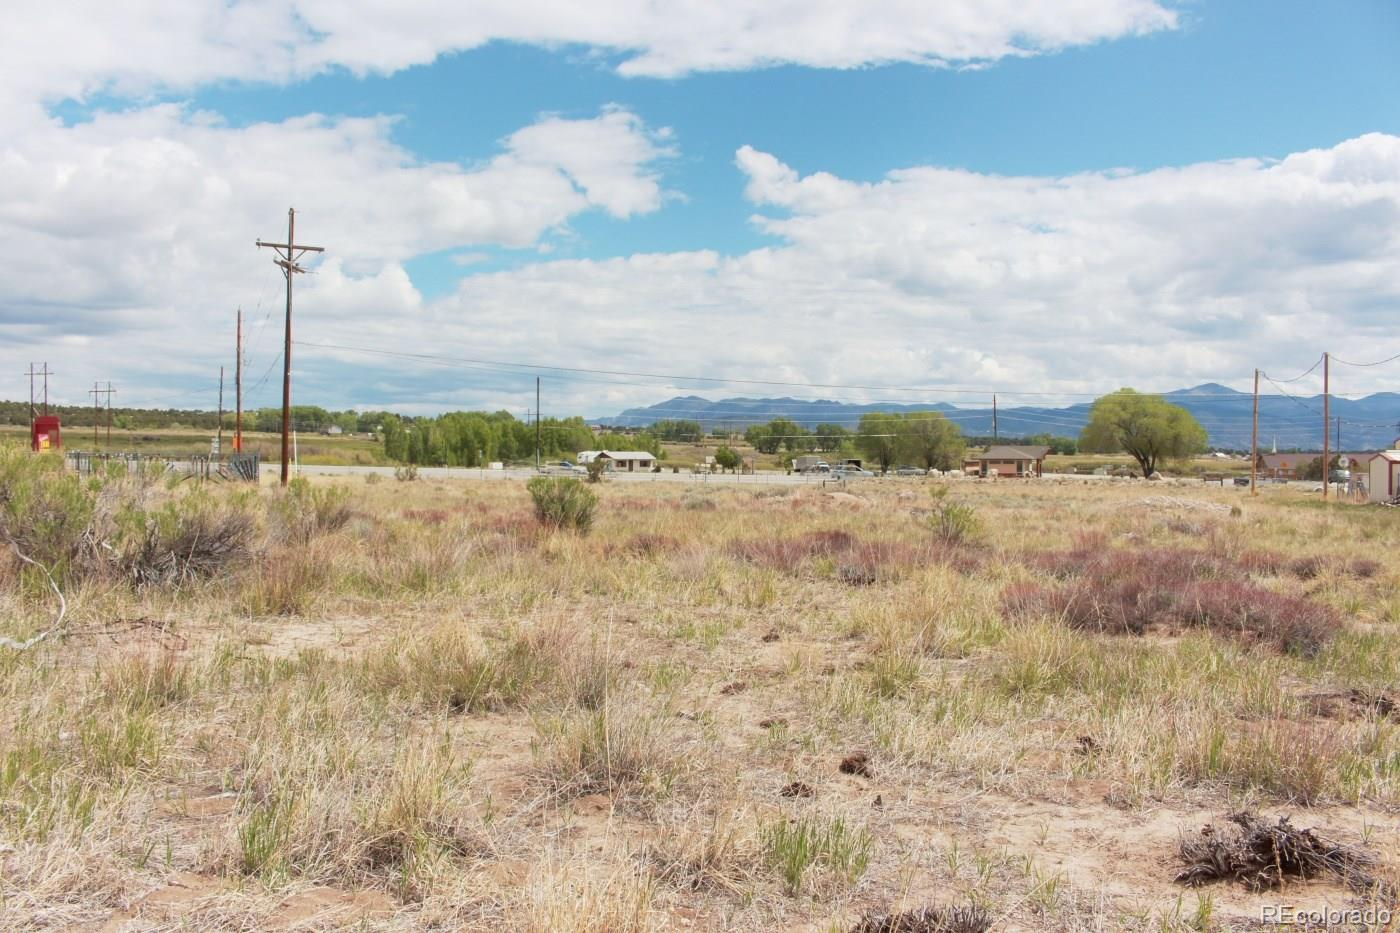 000 Hwy 50 Property Photo - Poncha Springs, CO real estate listing